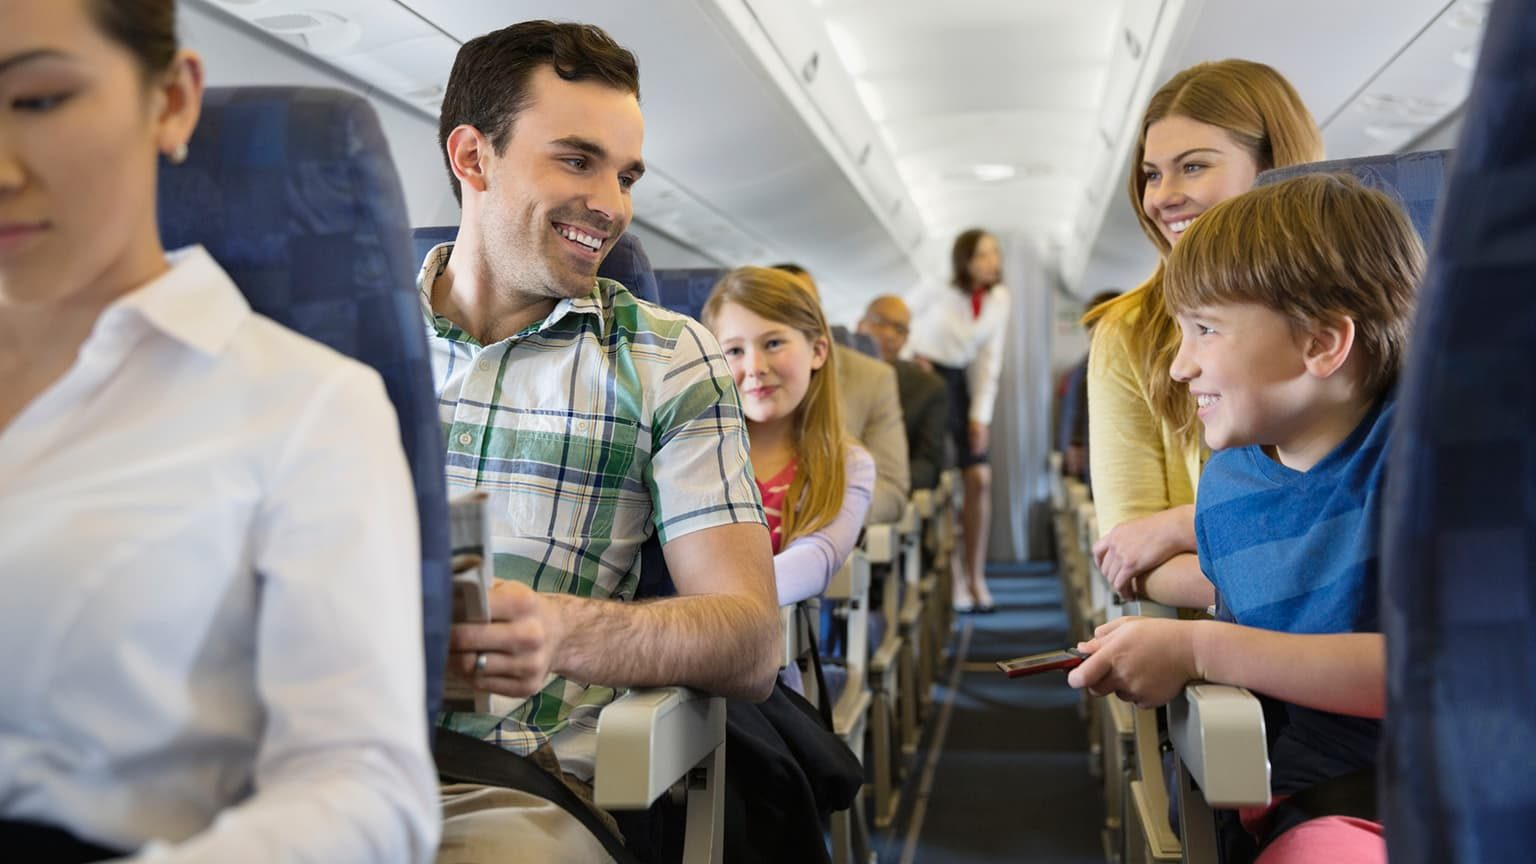 A young  family seating by the aisle of an airplane